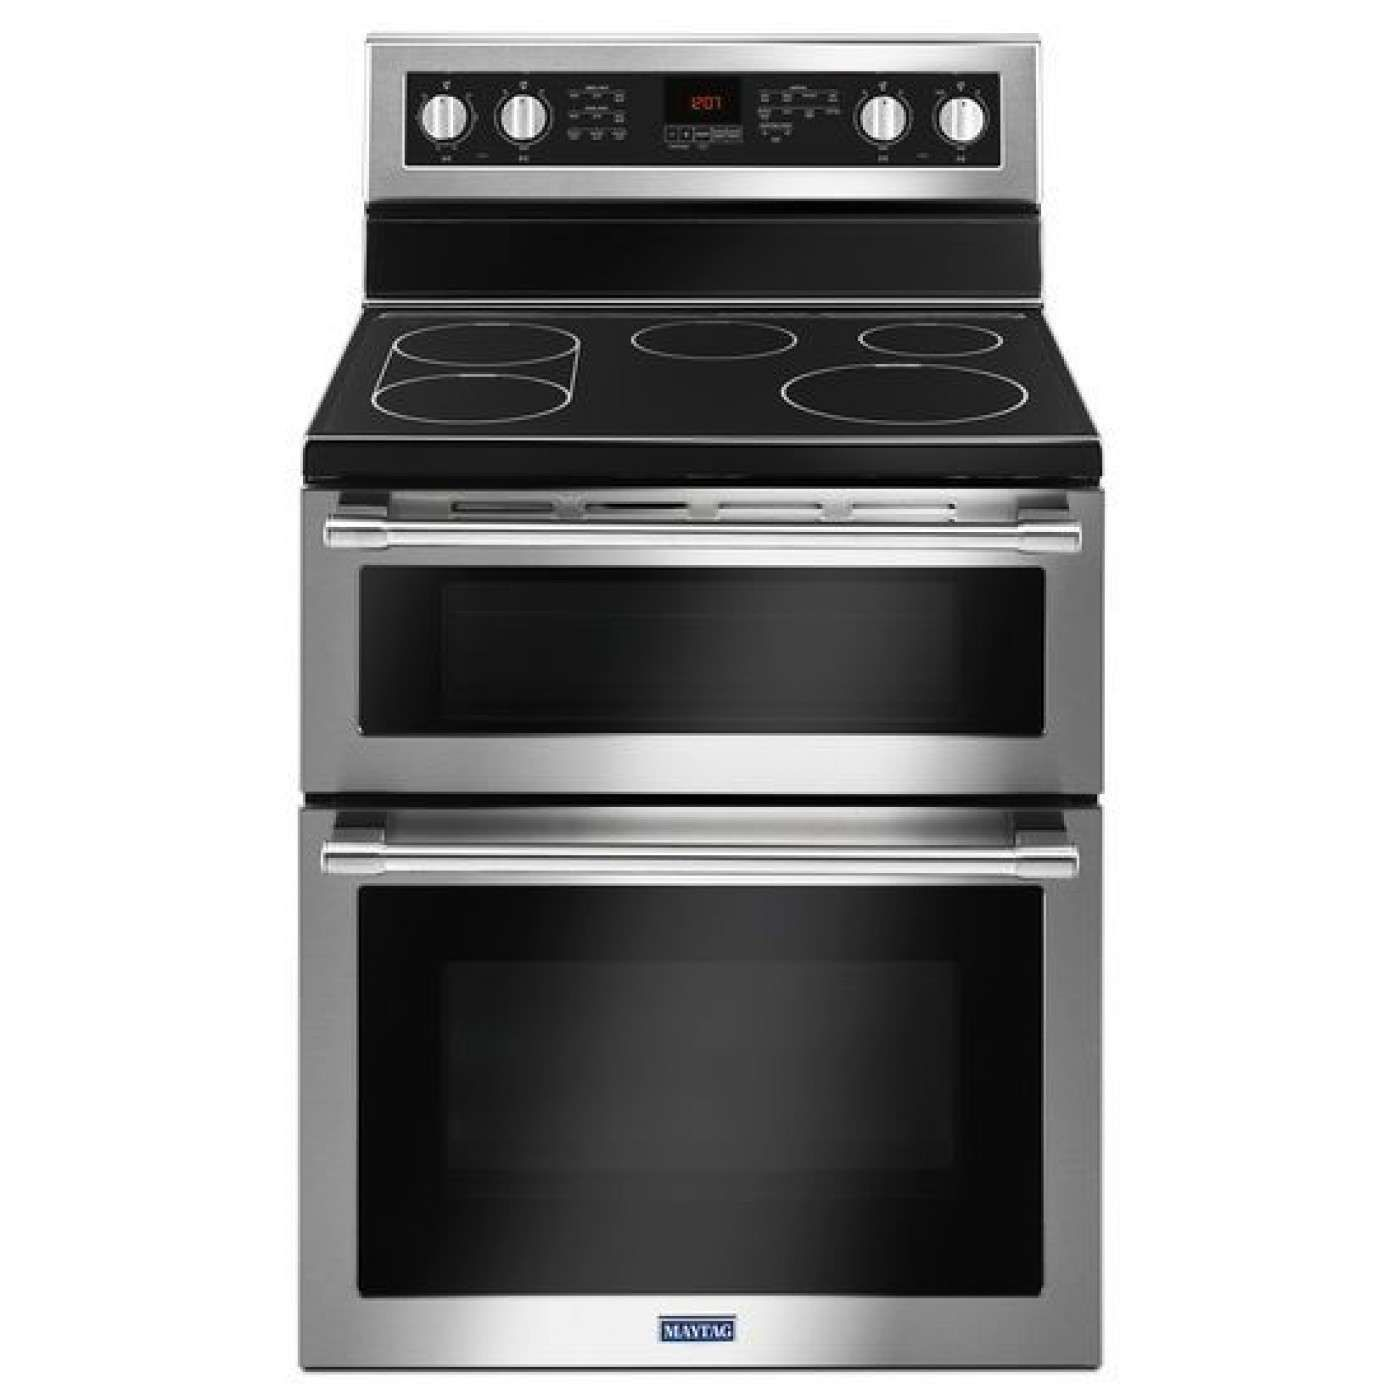 Met8800fz By Maytag Electric Ranges Goedekers Com In 2020 Double Oven Electric Range Stainless Steel Double Oven Wall Oven